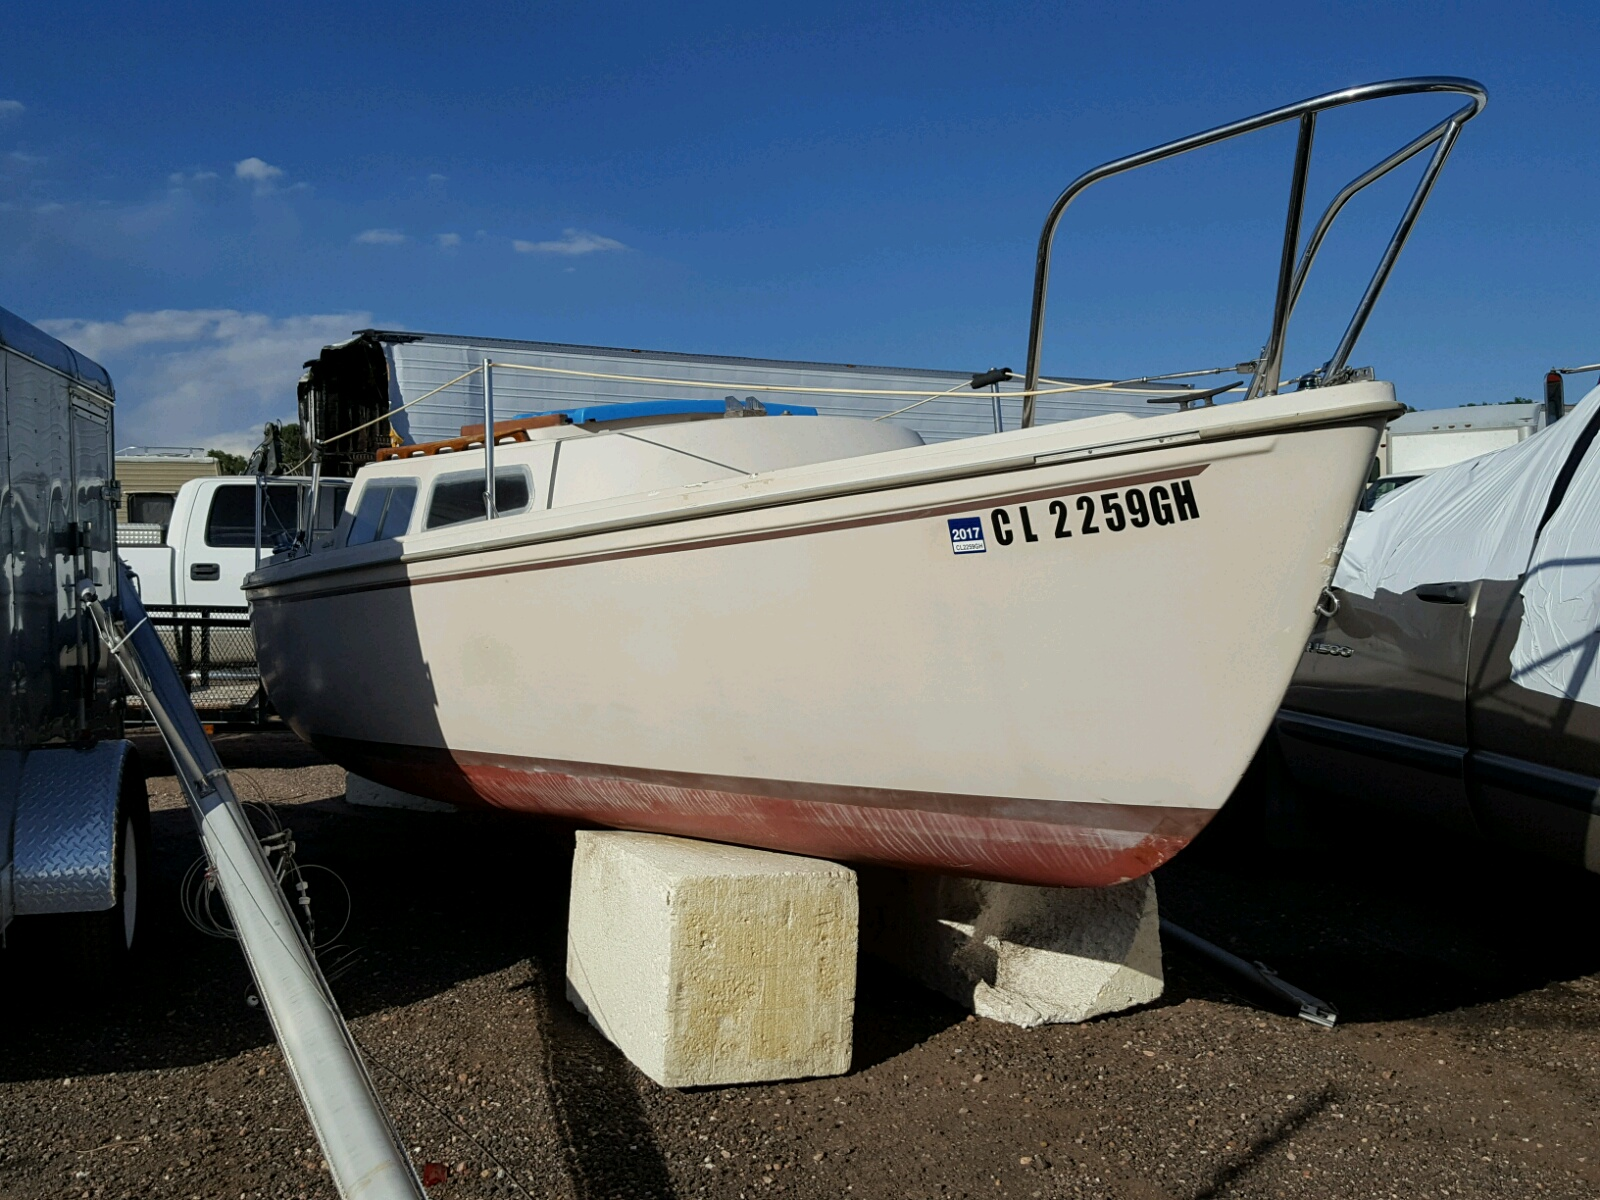 Salvage 1982 Chalet MARINEBOAT for sale